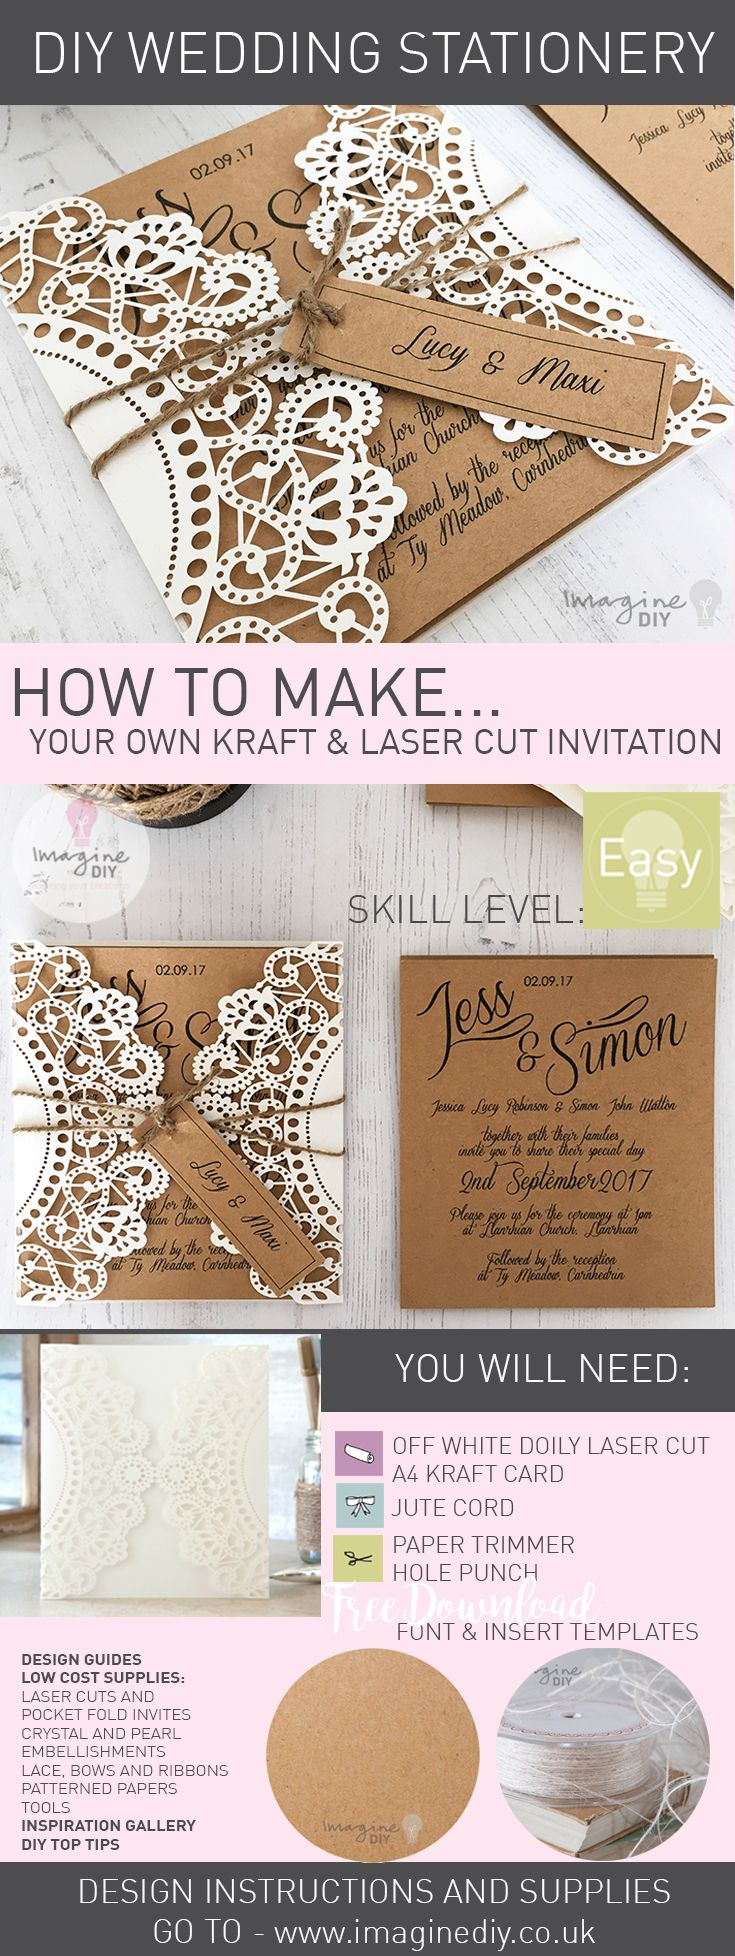 How to makerustic kraft and laser cut invitation with tag